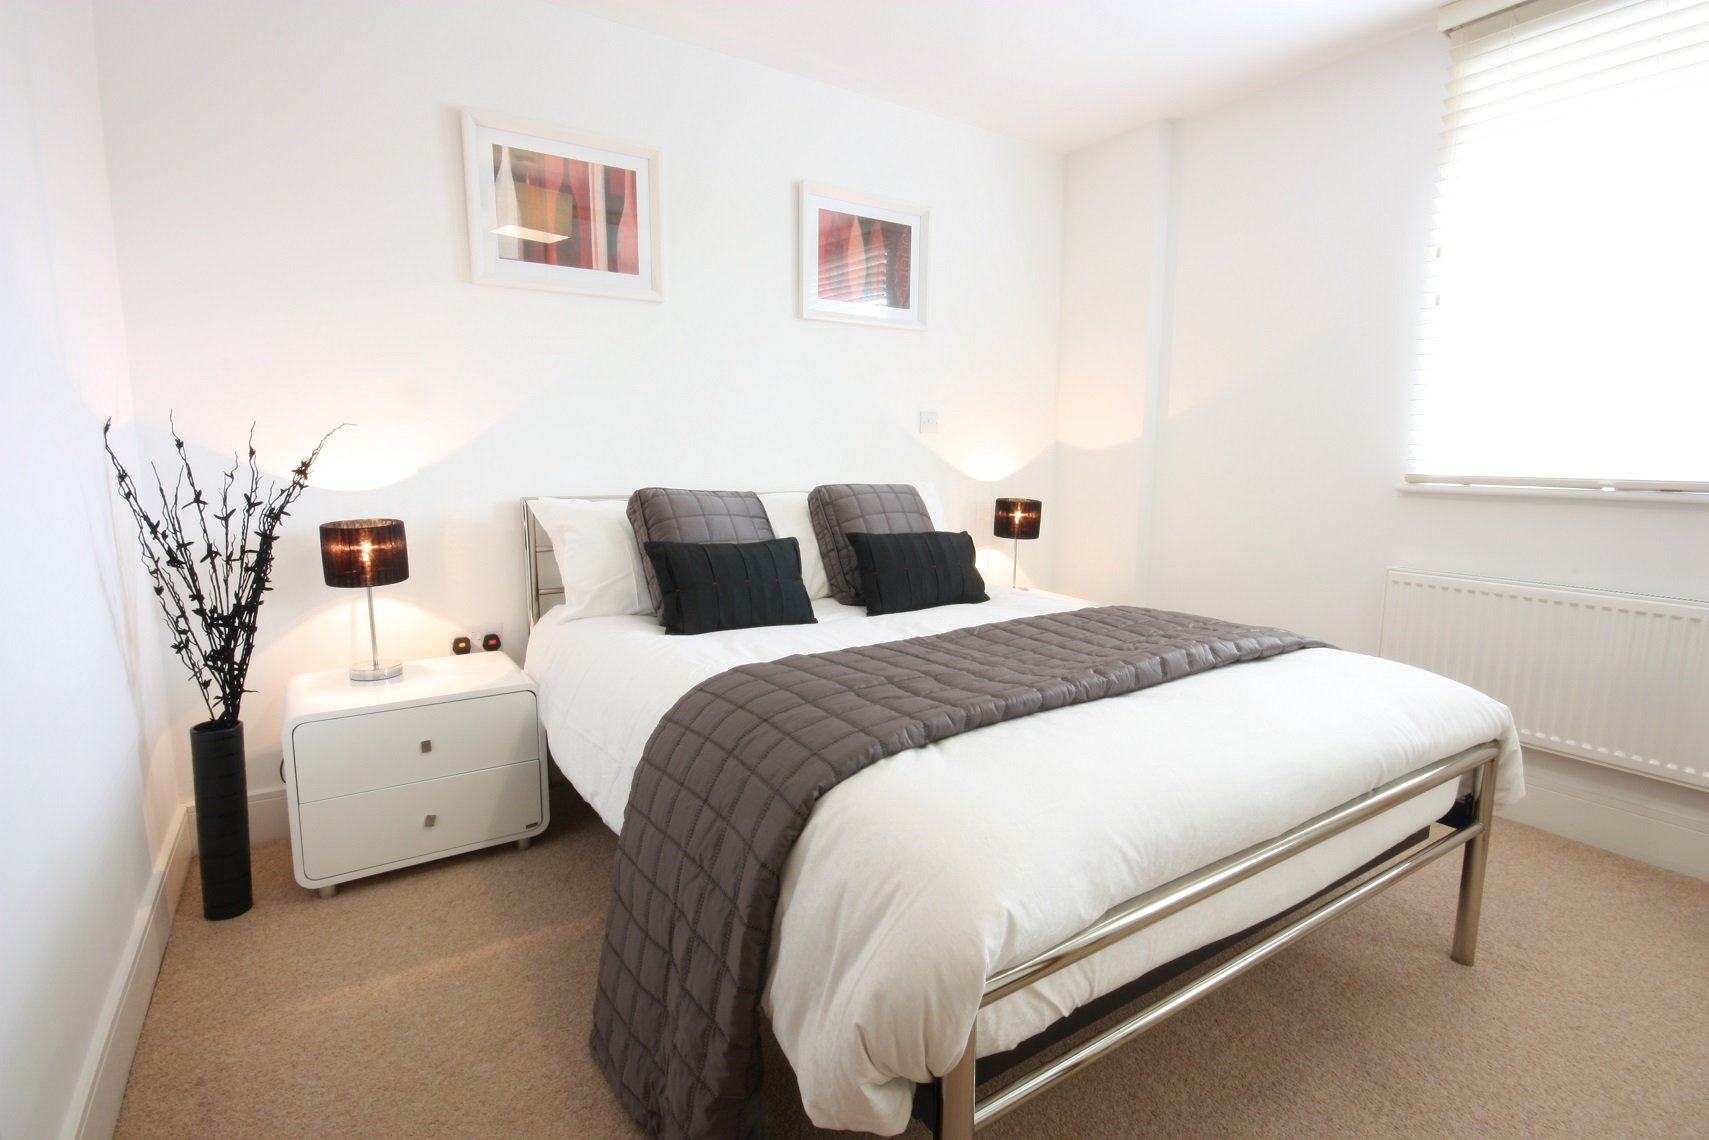 Windsor-Serviced-Accommodation,-Berkshire,-UK!-Including-HD-TV-with-Full-Sky-Package-&-On-site-Parking!-BOOK-NOW-on-+44-208-691-3920-for-the-best-rates!